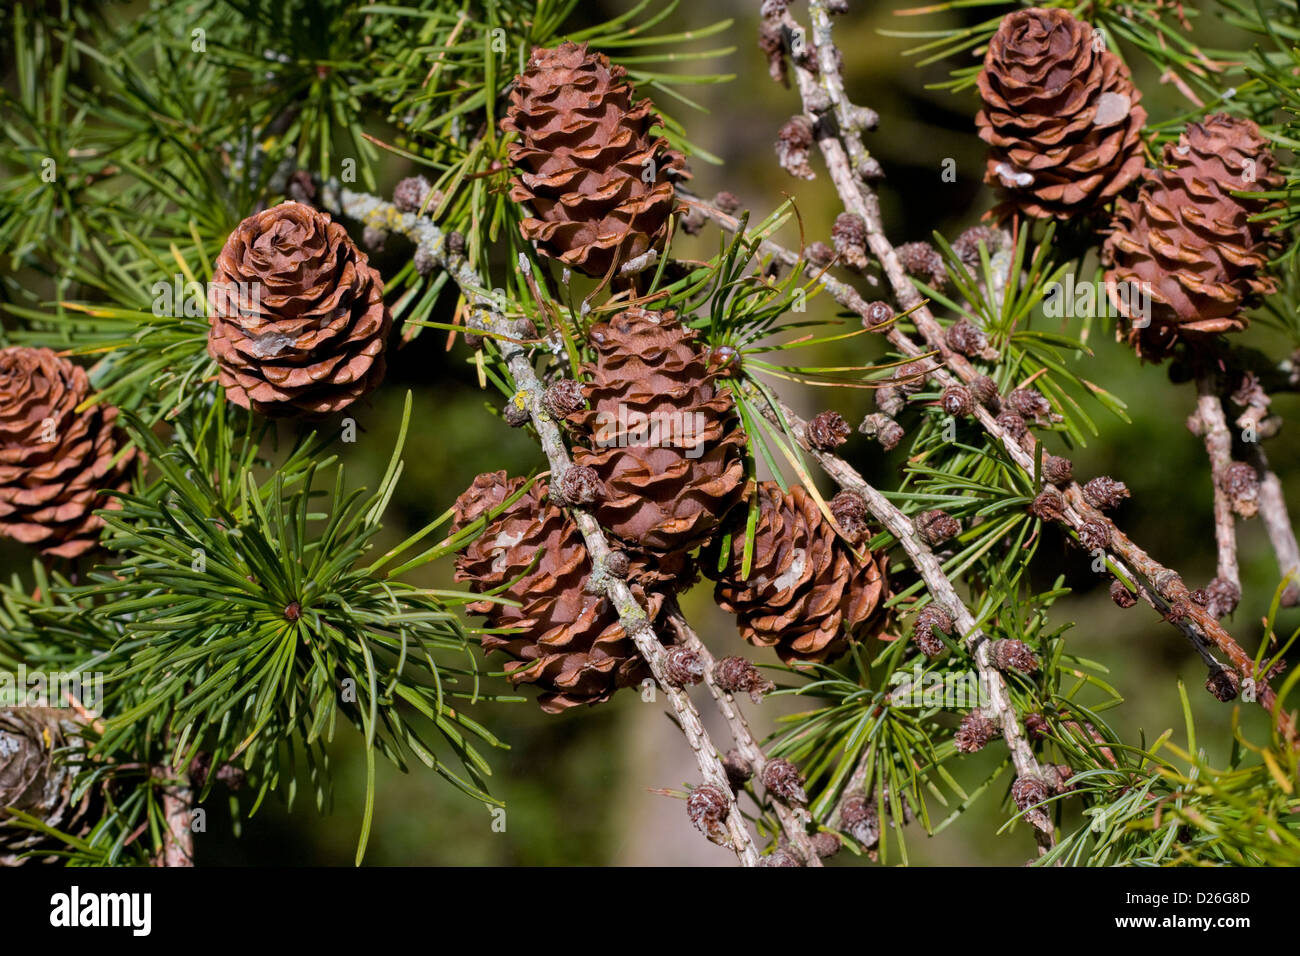 Pinecones  in conifer tree branch - Stock Image